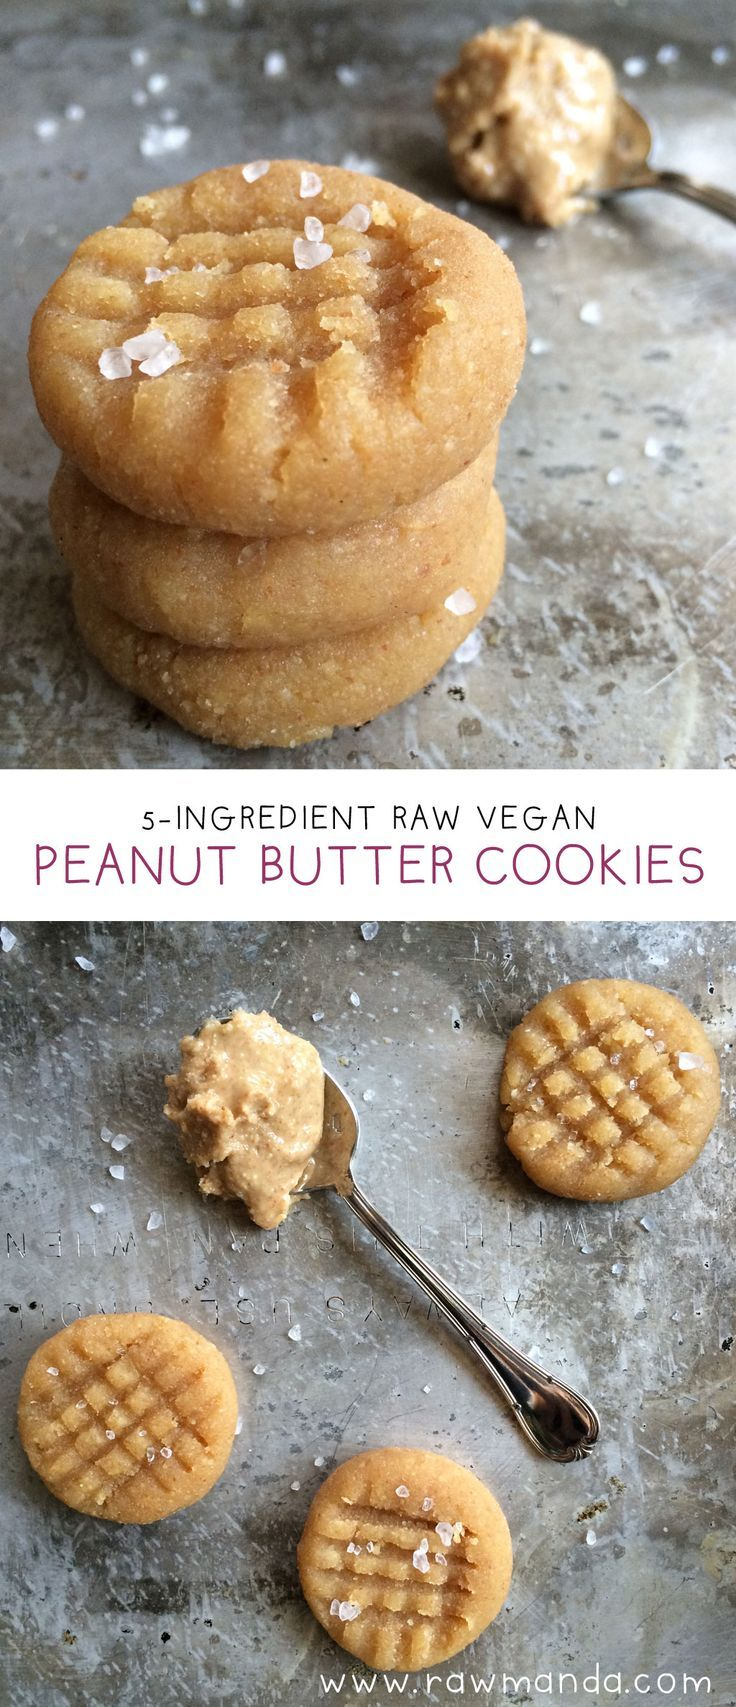 Soft, chewy raw peanut butter cookies are so fluffy and moist in the center after a few hours in the dehydrator. An easy 5 ingredient snack to make for peanut butter lovers! Substitute any nut butter to make your favorite gluten-free cookie. www.rawmanda.com